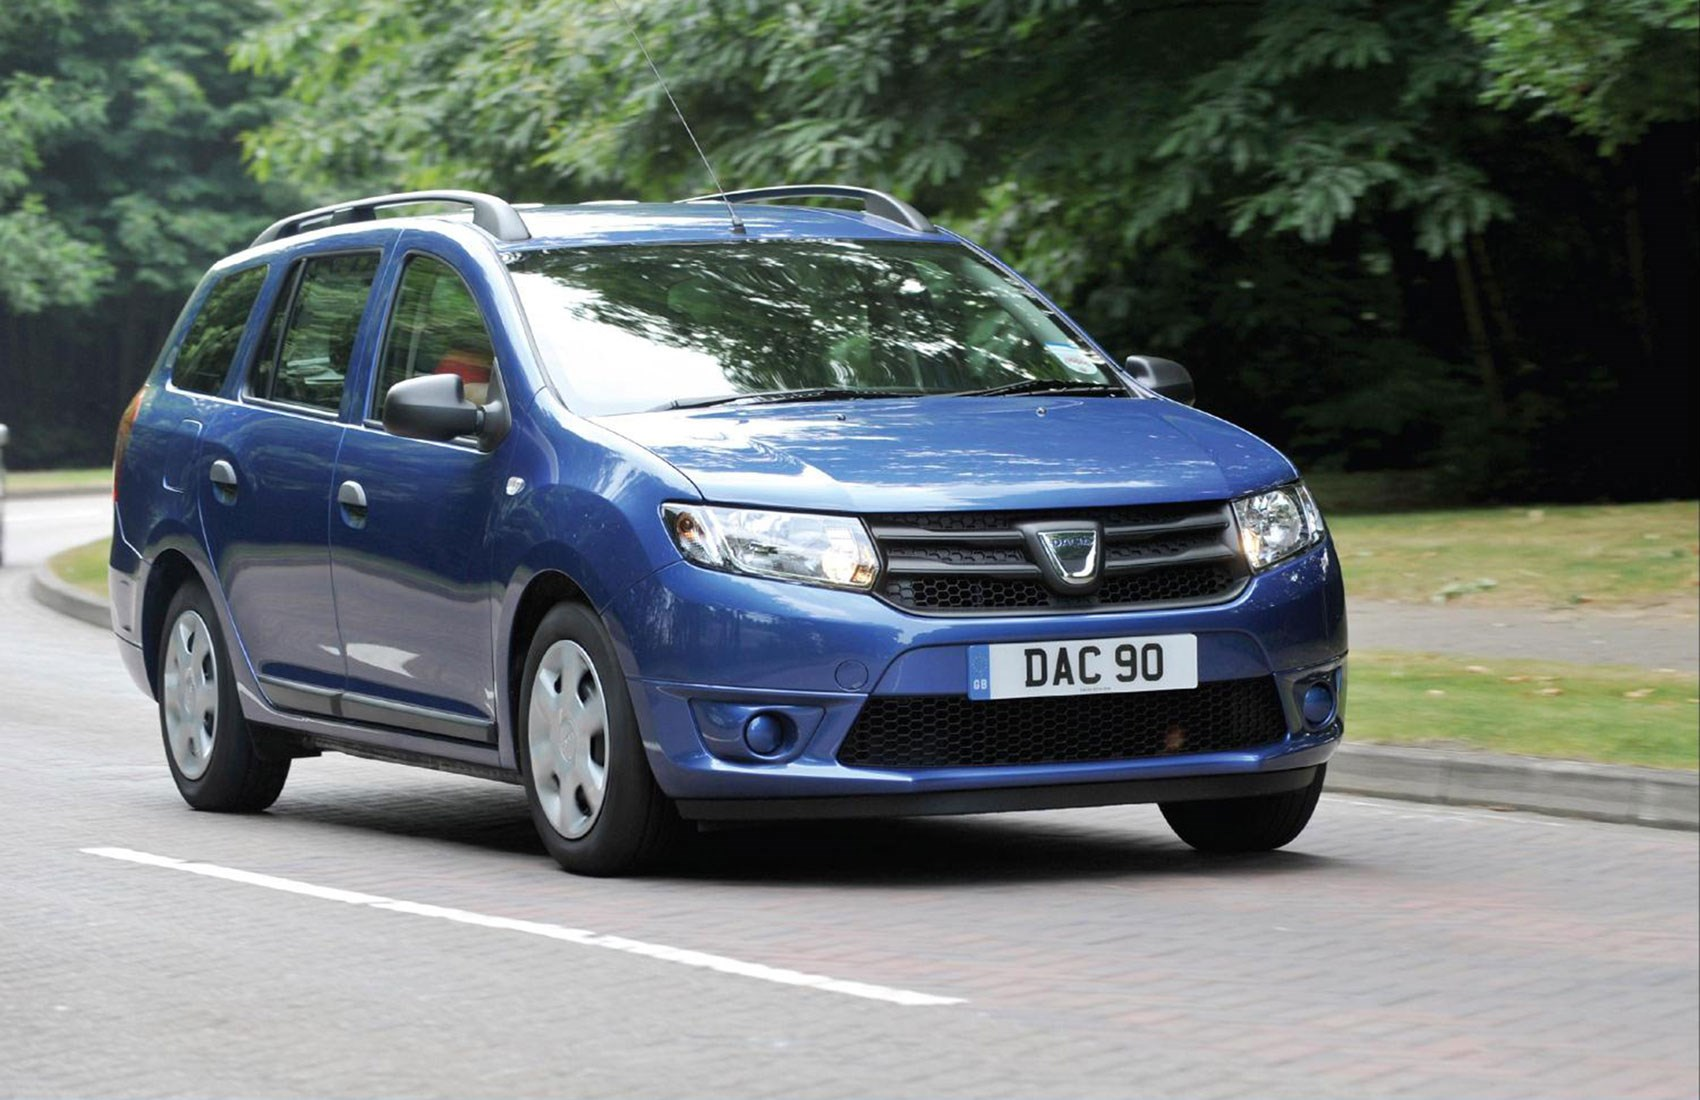 100 dacia sandero laureate prime 2015 used dacia cars for sale in spalding lincolnshire. Black Bedroom Furniture Sets. Home Design Ideas